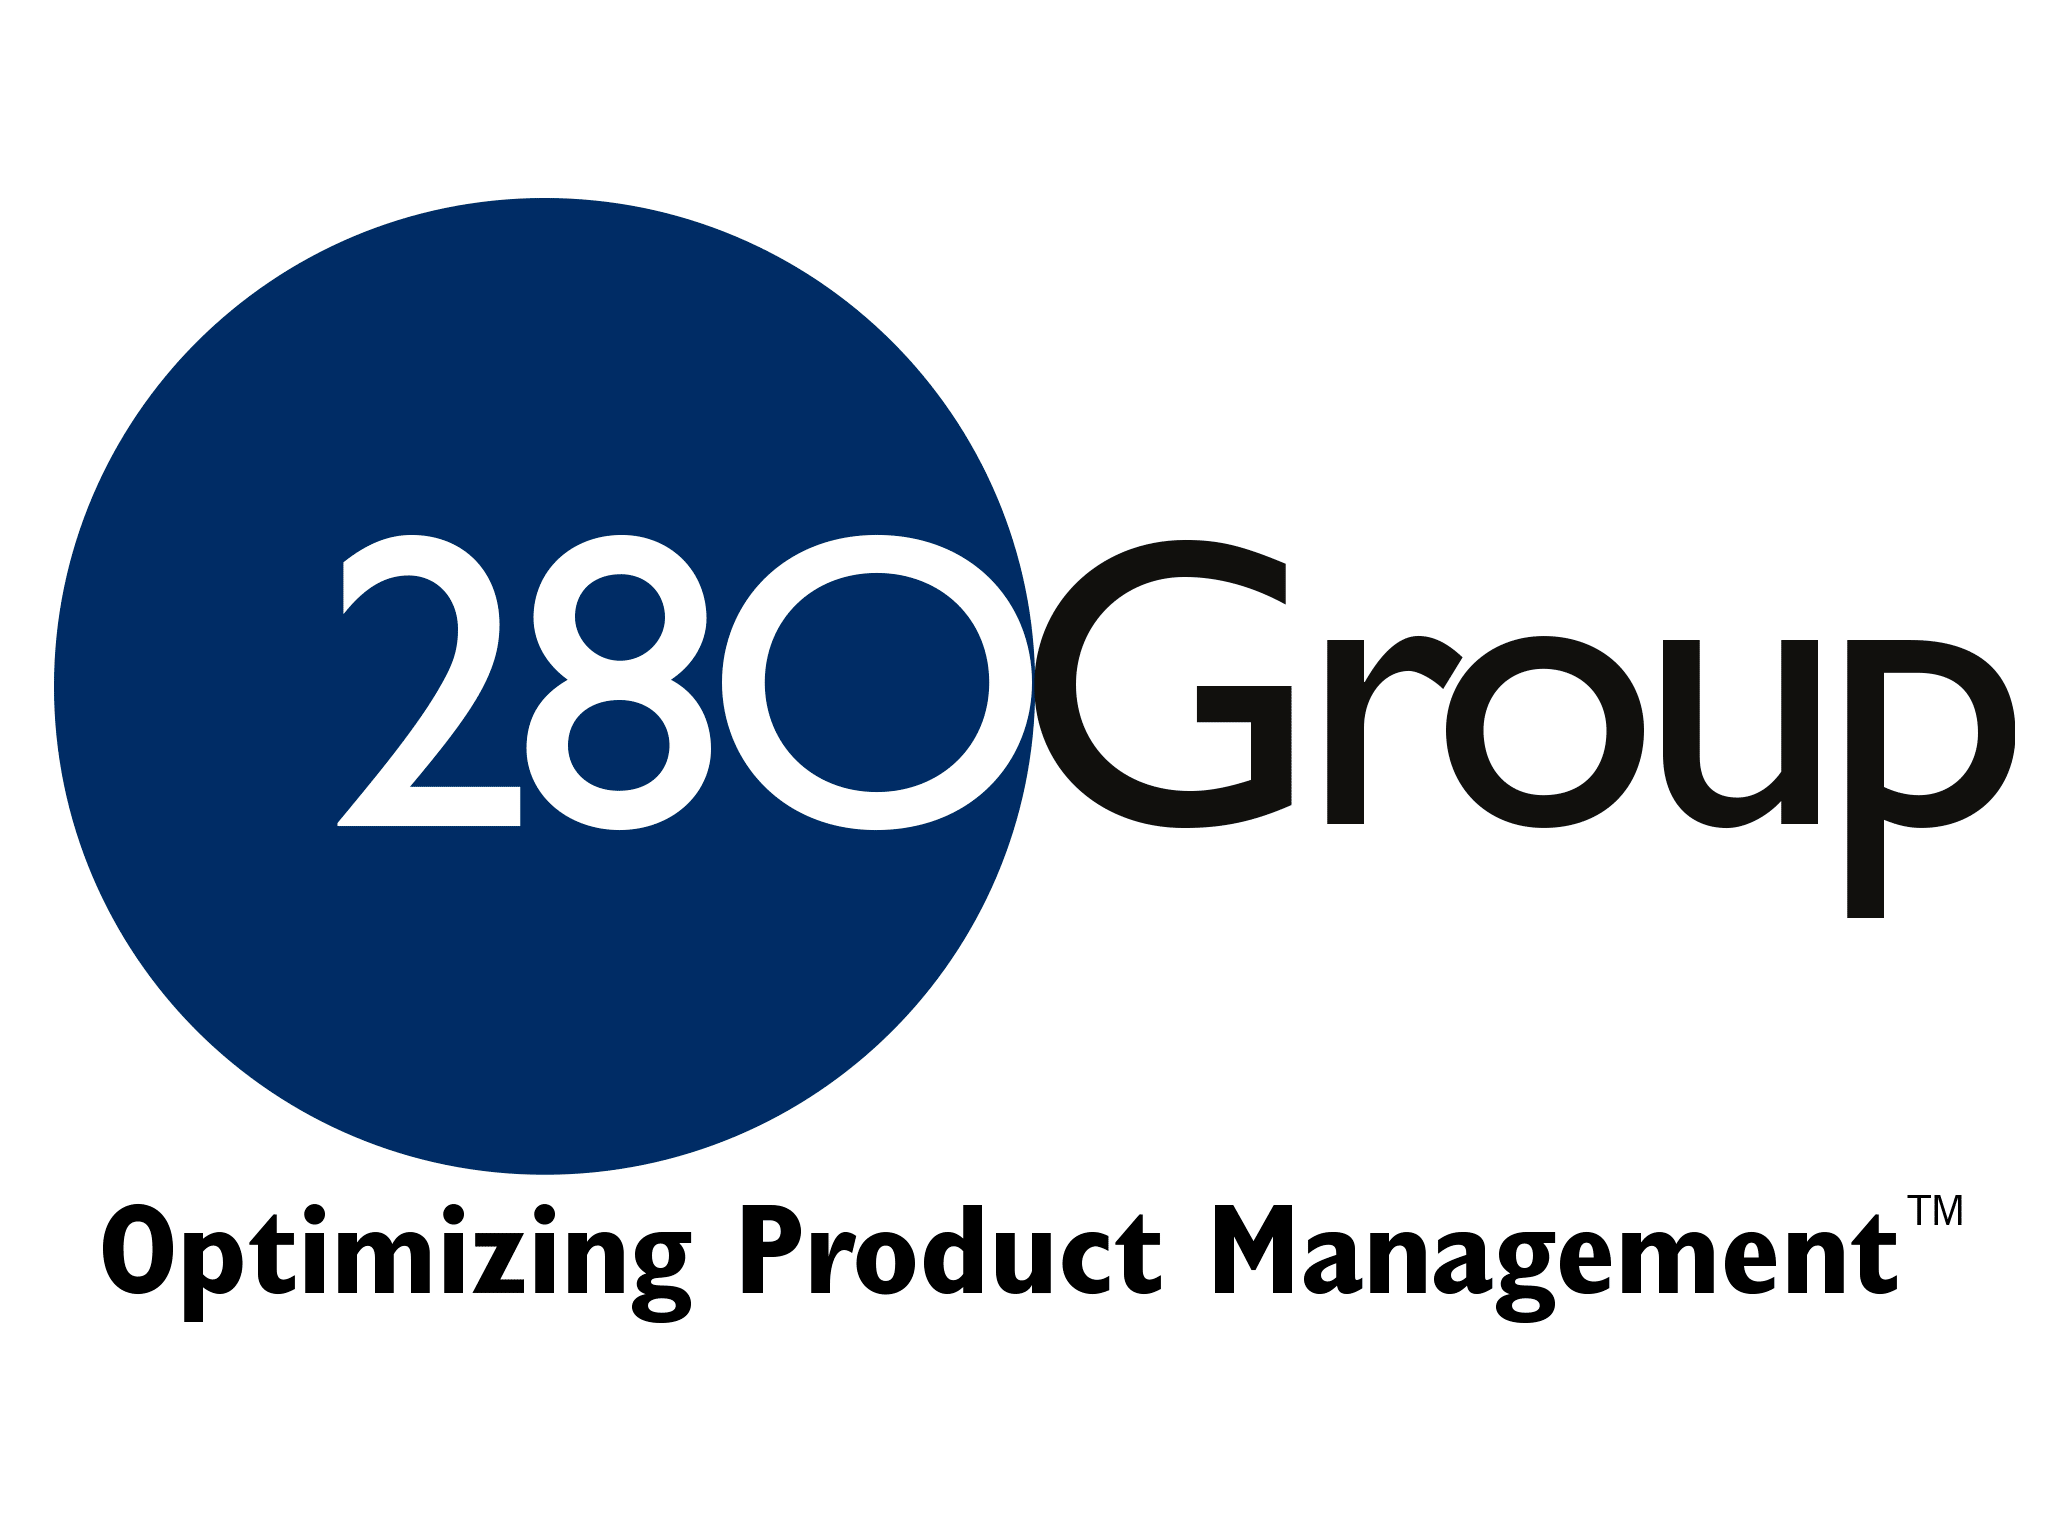 280 group los gatos ca products and services include consulting contractors training certifications books the product management office and recruiting xflitez Images